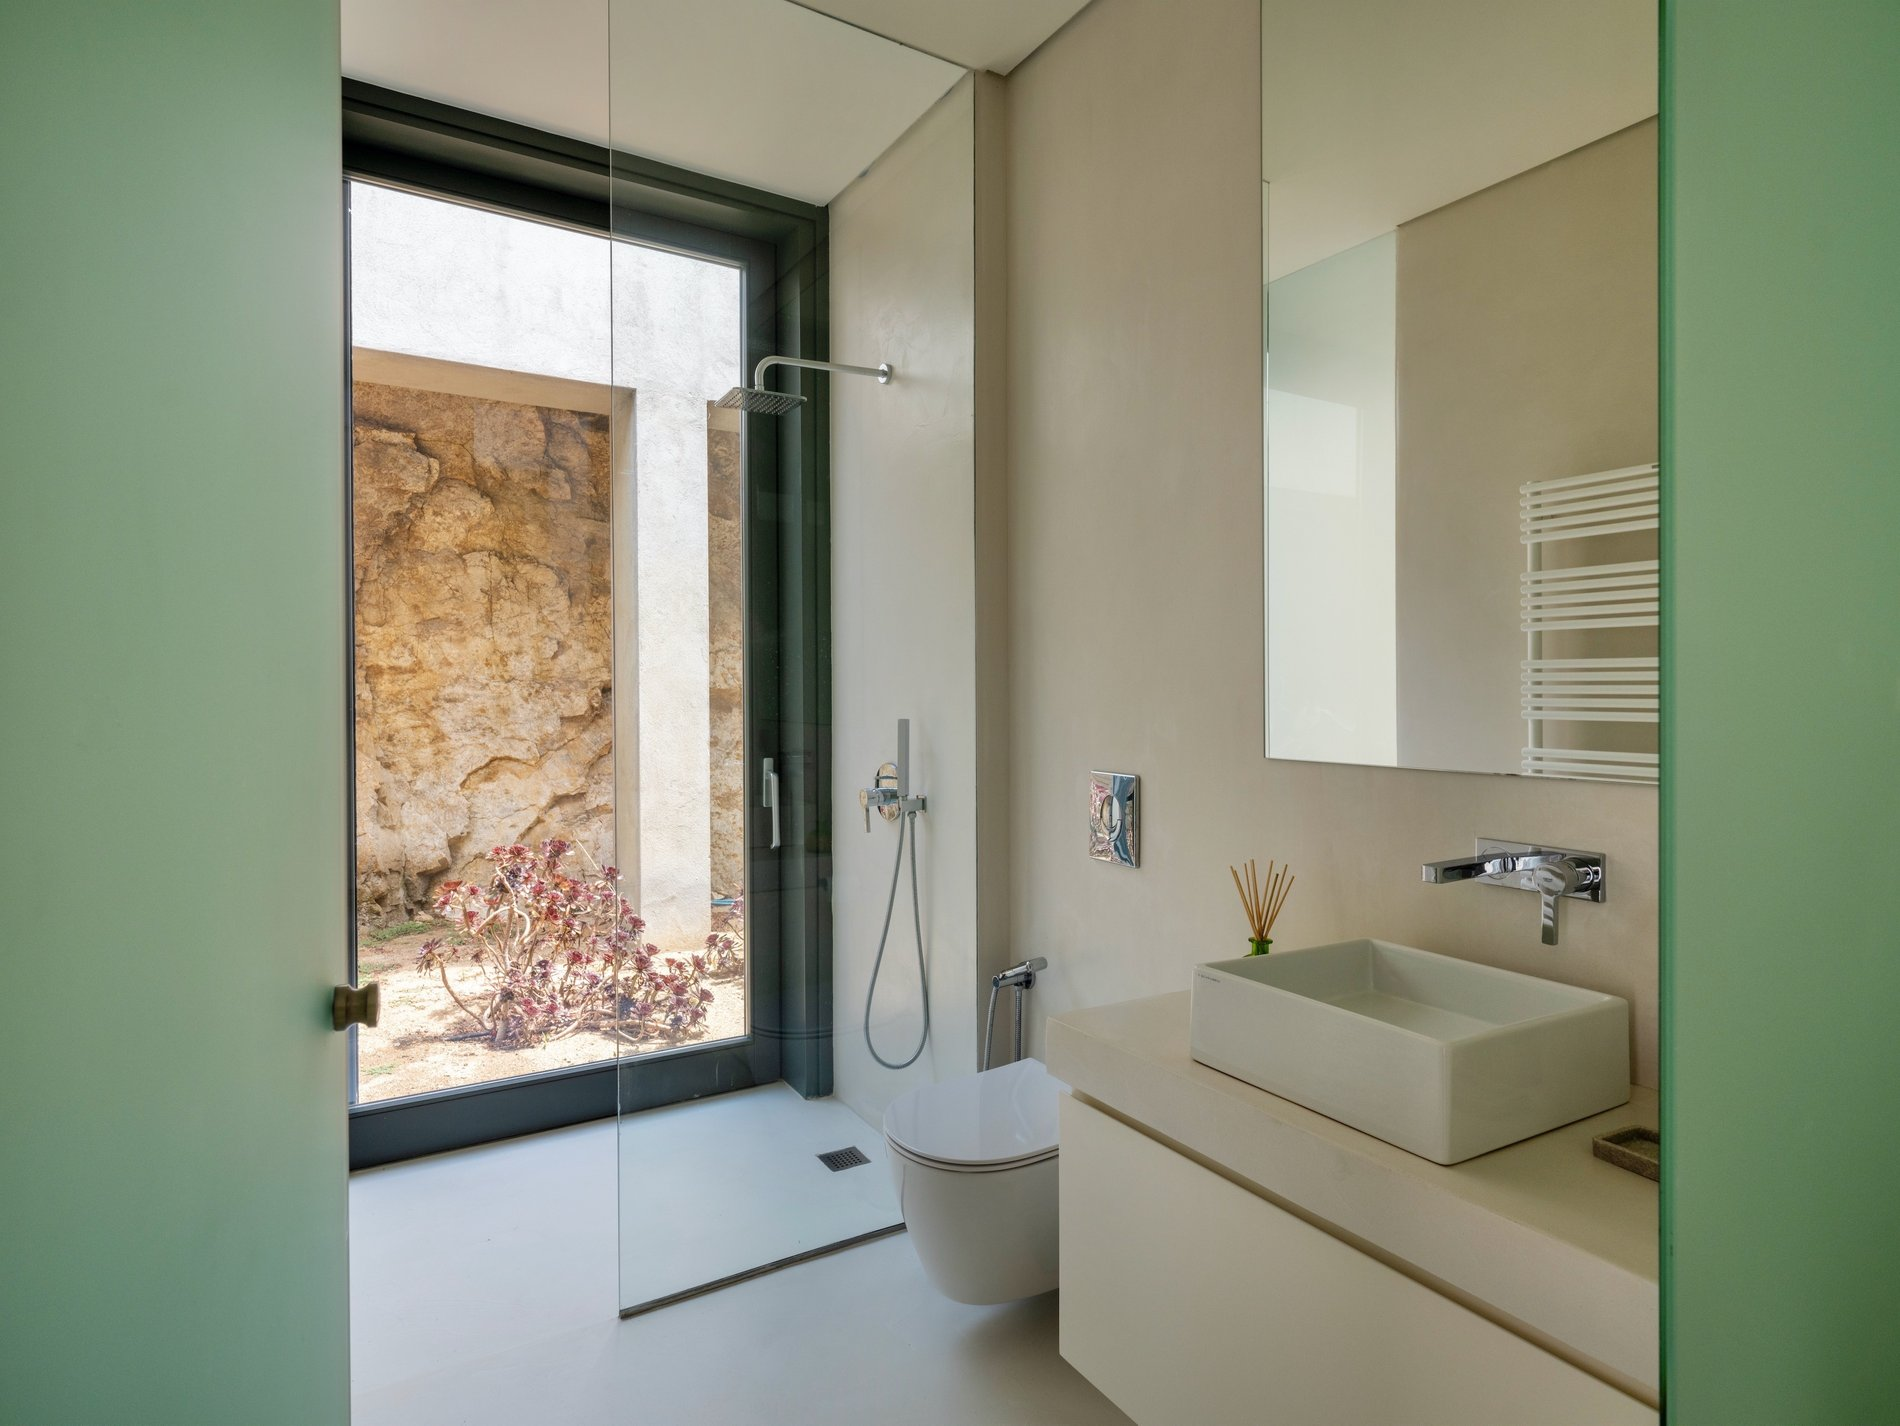 Bathroom finished with cement floors and walls. Modern design with a glass wall.